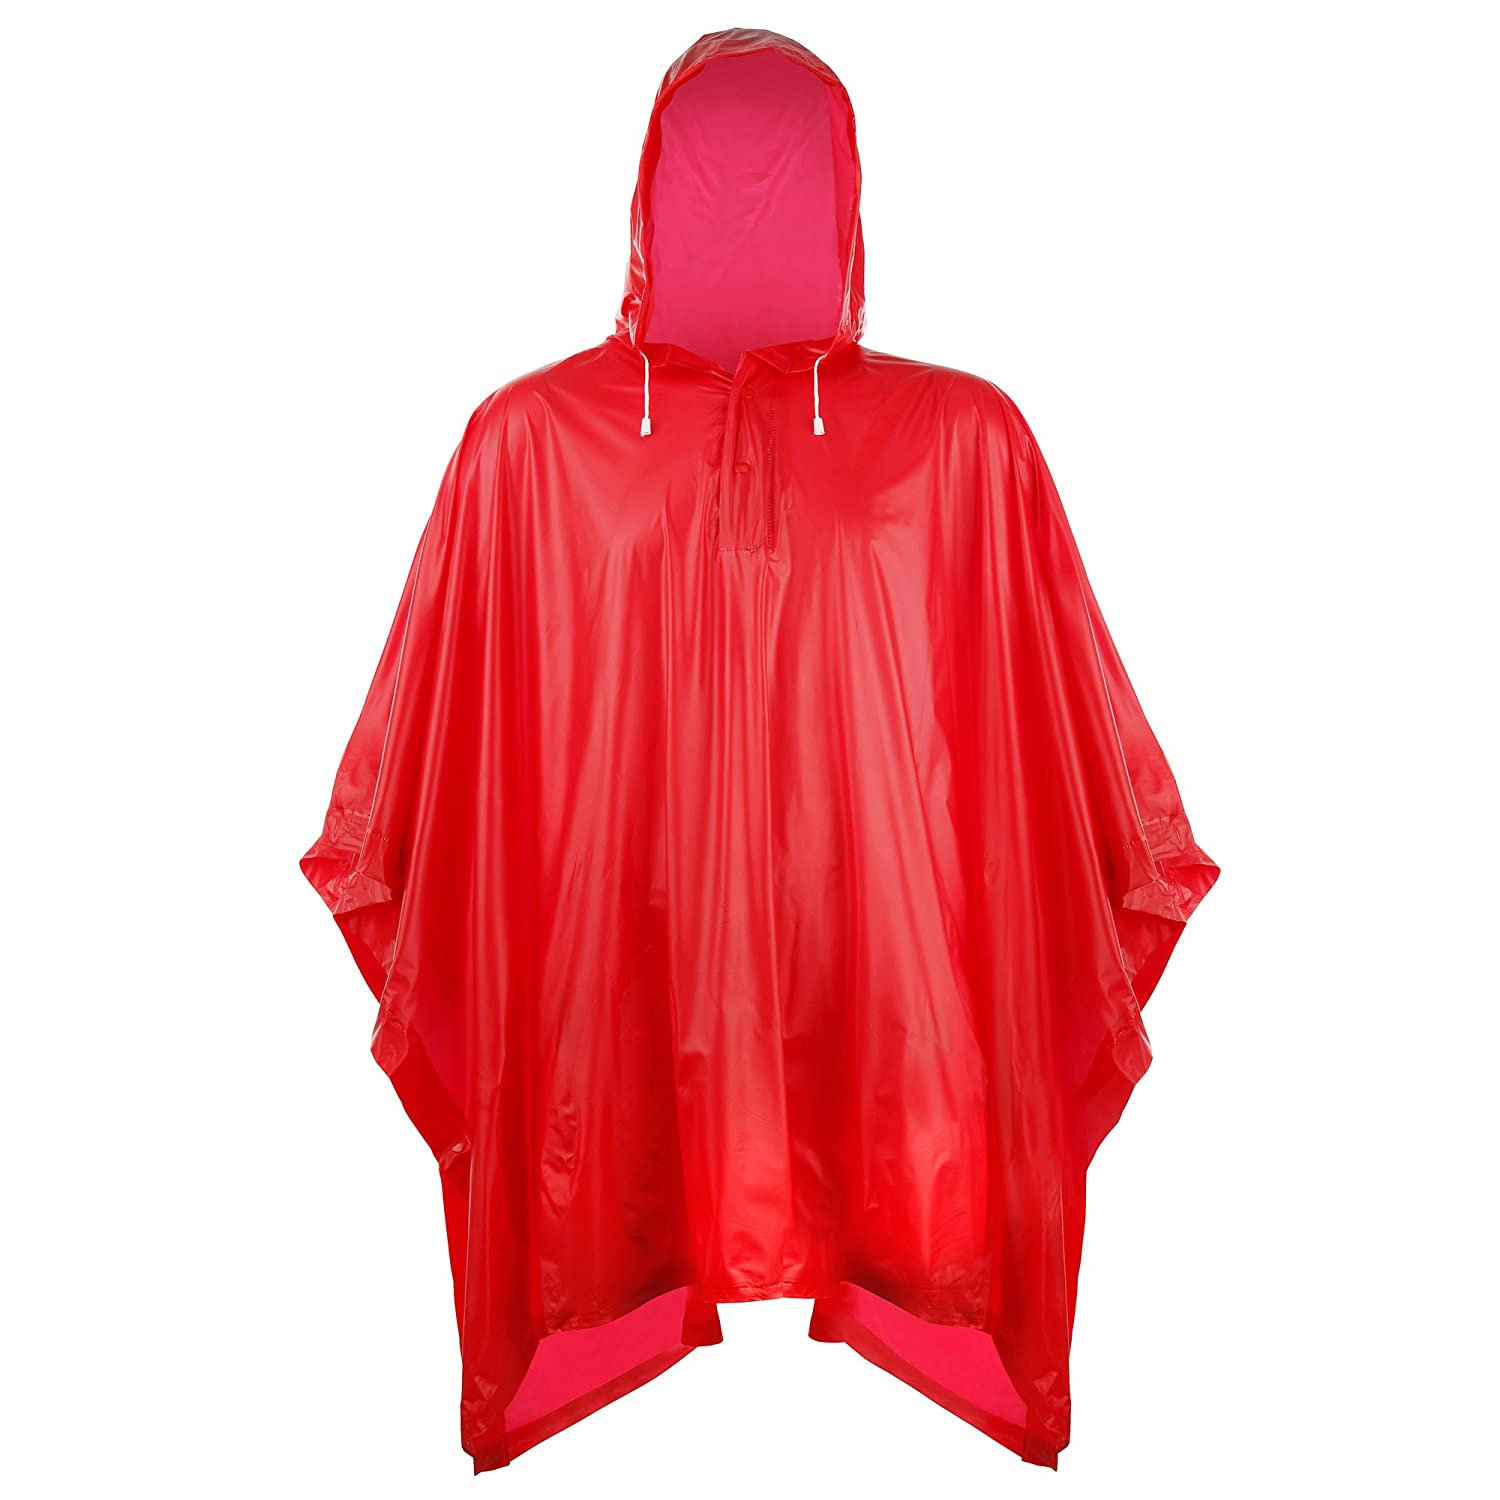 Splashmac rain poncho for festivals and all outdoor activities Splashmacs